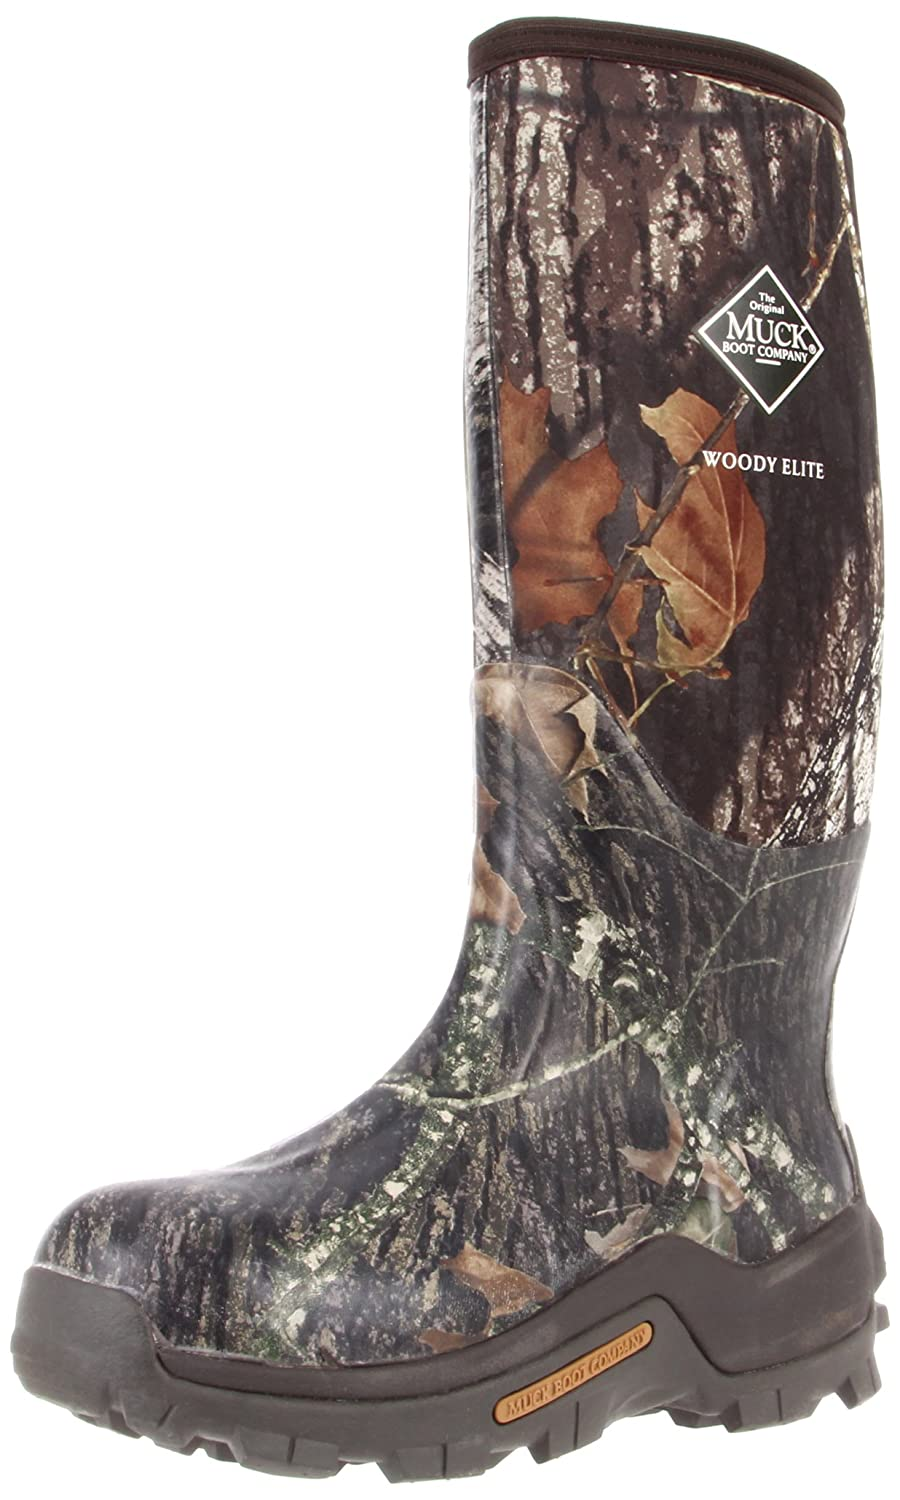 Top 10 Best Insulated Hunting Boots For Women 2018 2020 On